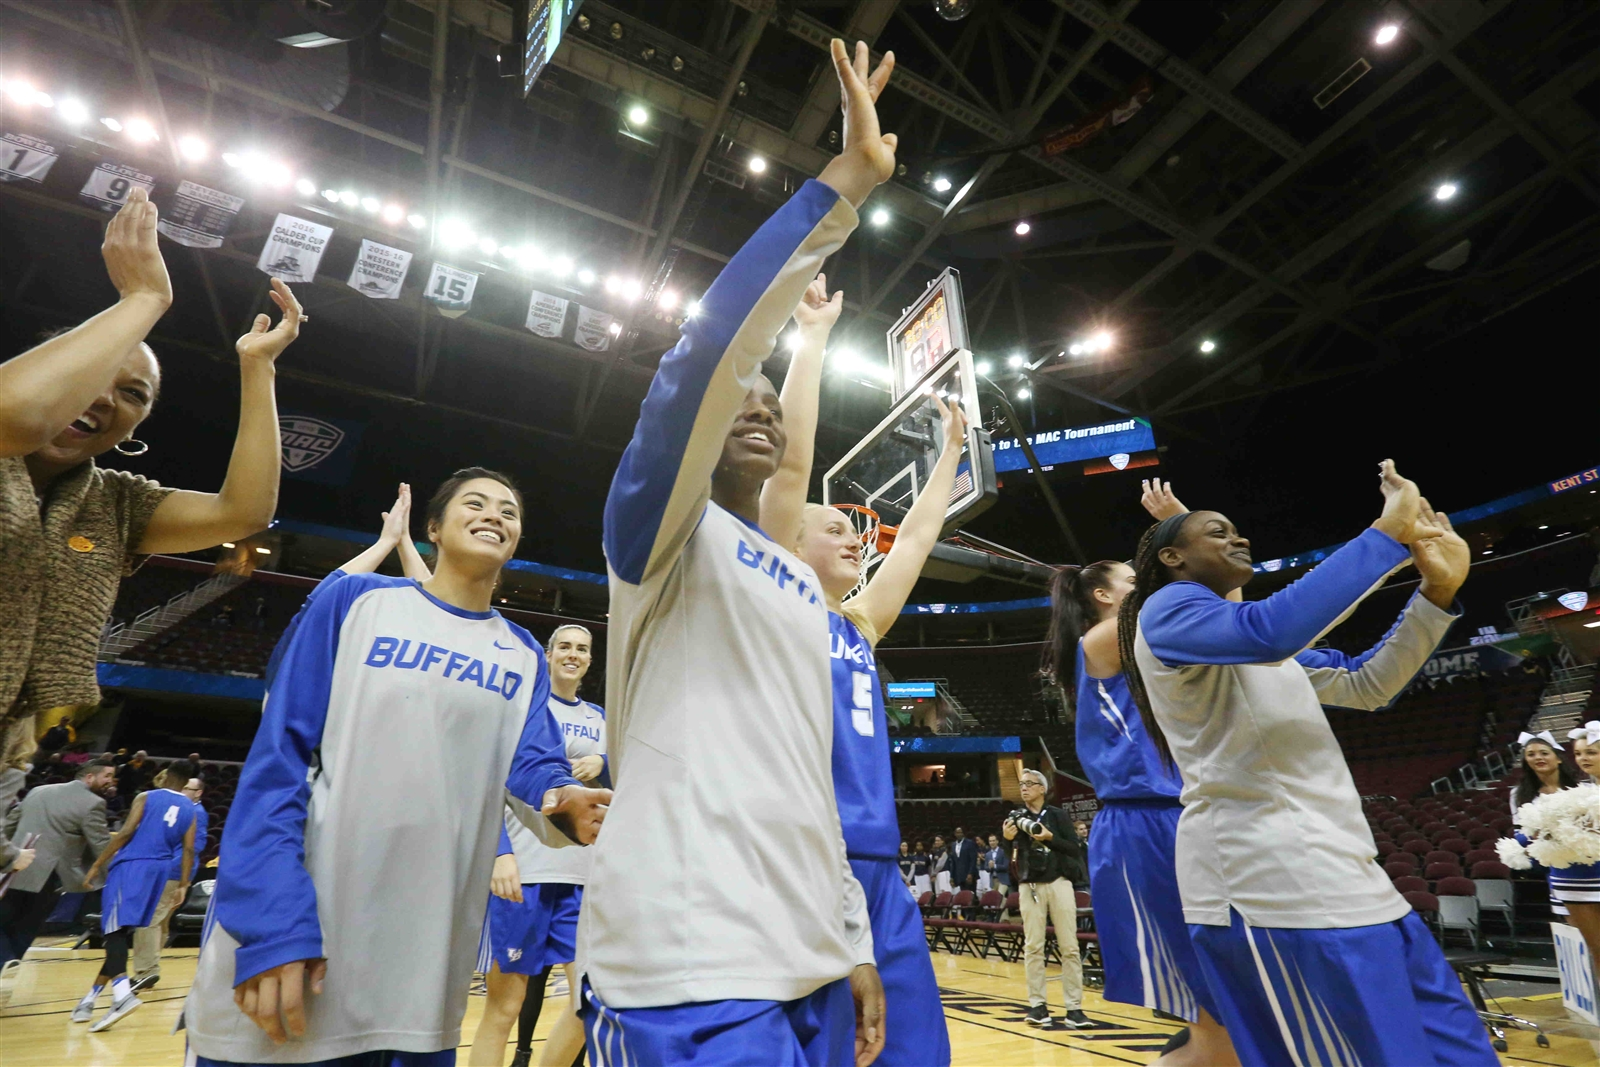 Buffalo Bulls beat Ball State Cardinals, 69-65, in the quarterfinals of the MAC Championship.